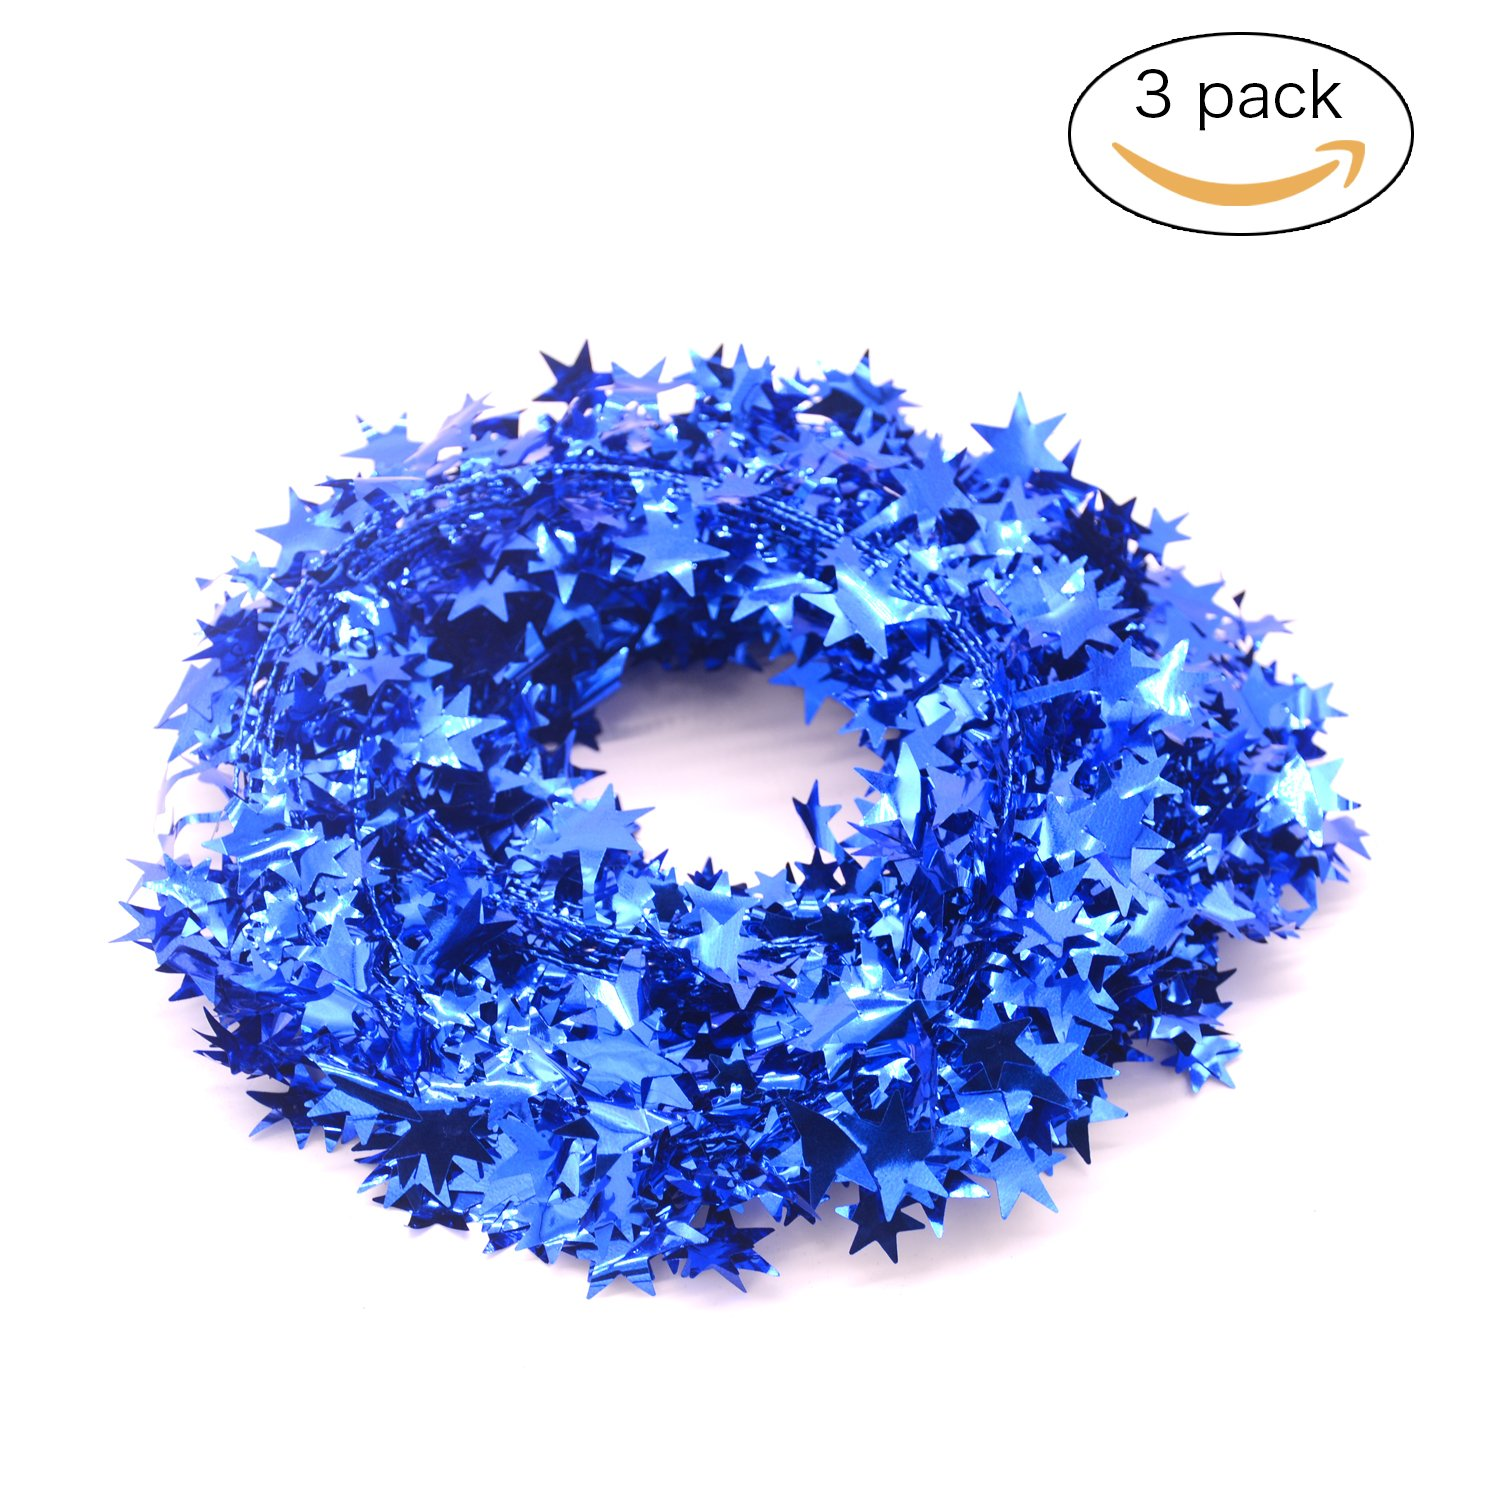 3PCS Wire Garland,Gold Stars,Christmas Decorations Party Accessory,25 Ft x 3 (Navy Blue)